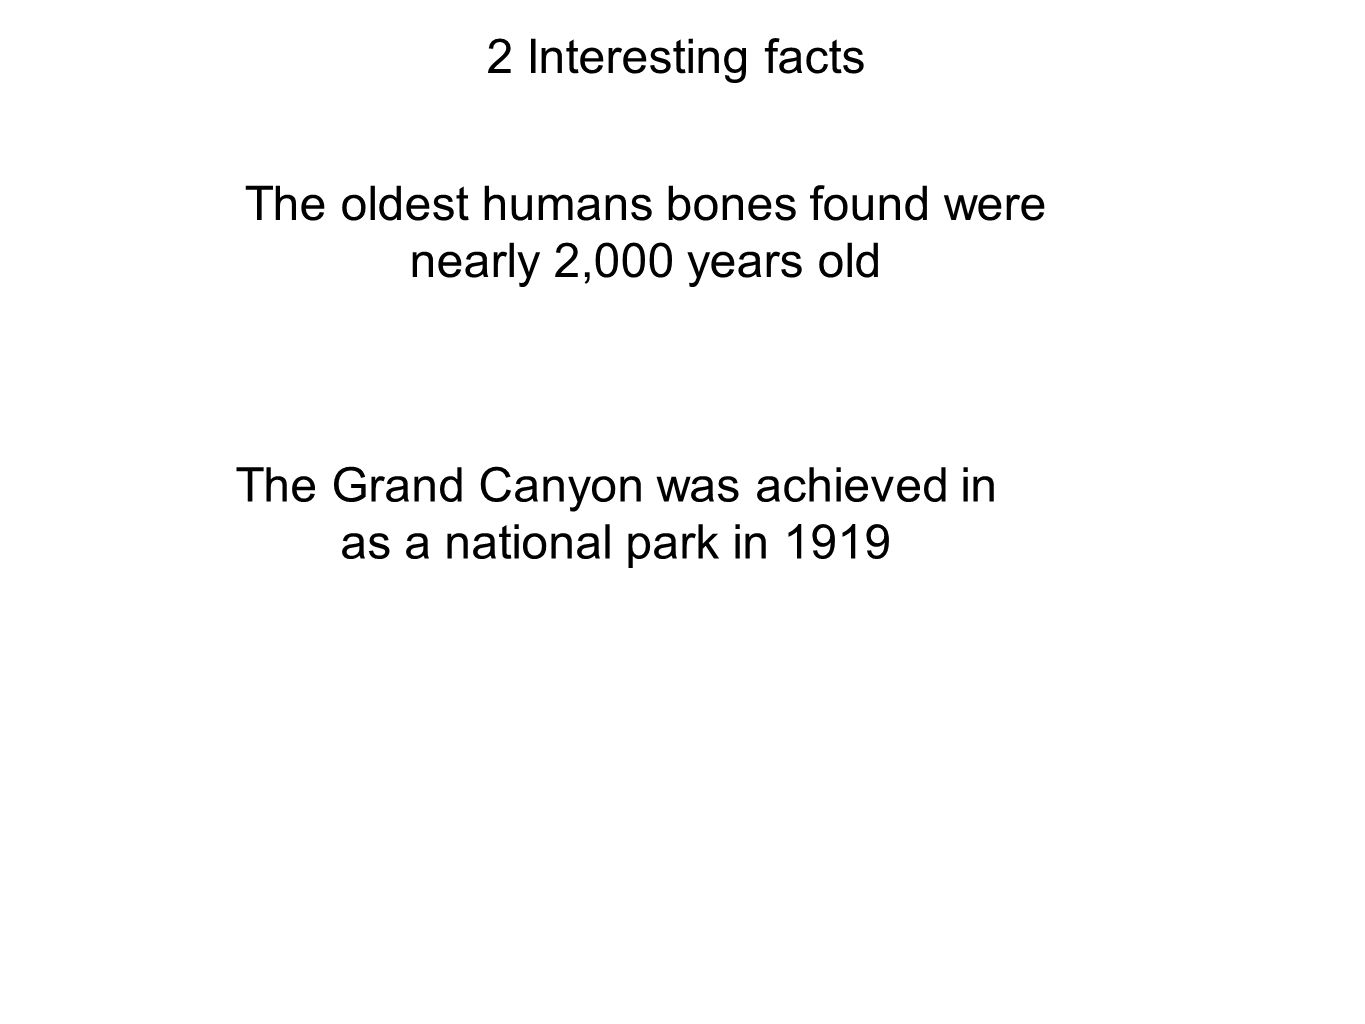 The oldest humans bones found were nearly 2,000 years old